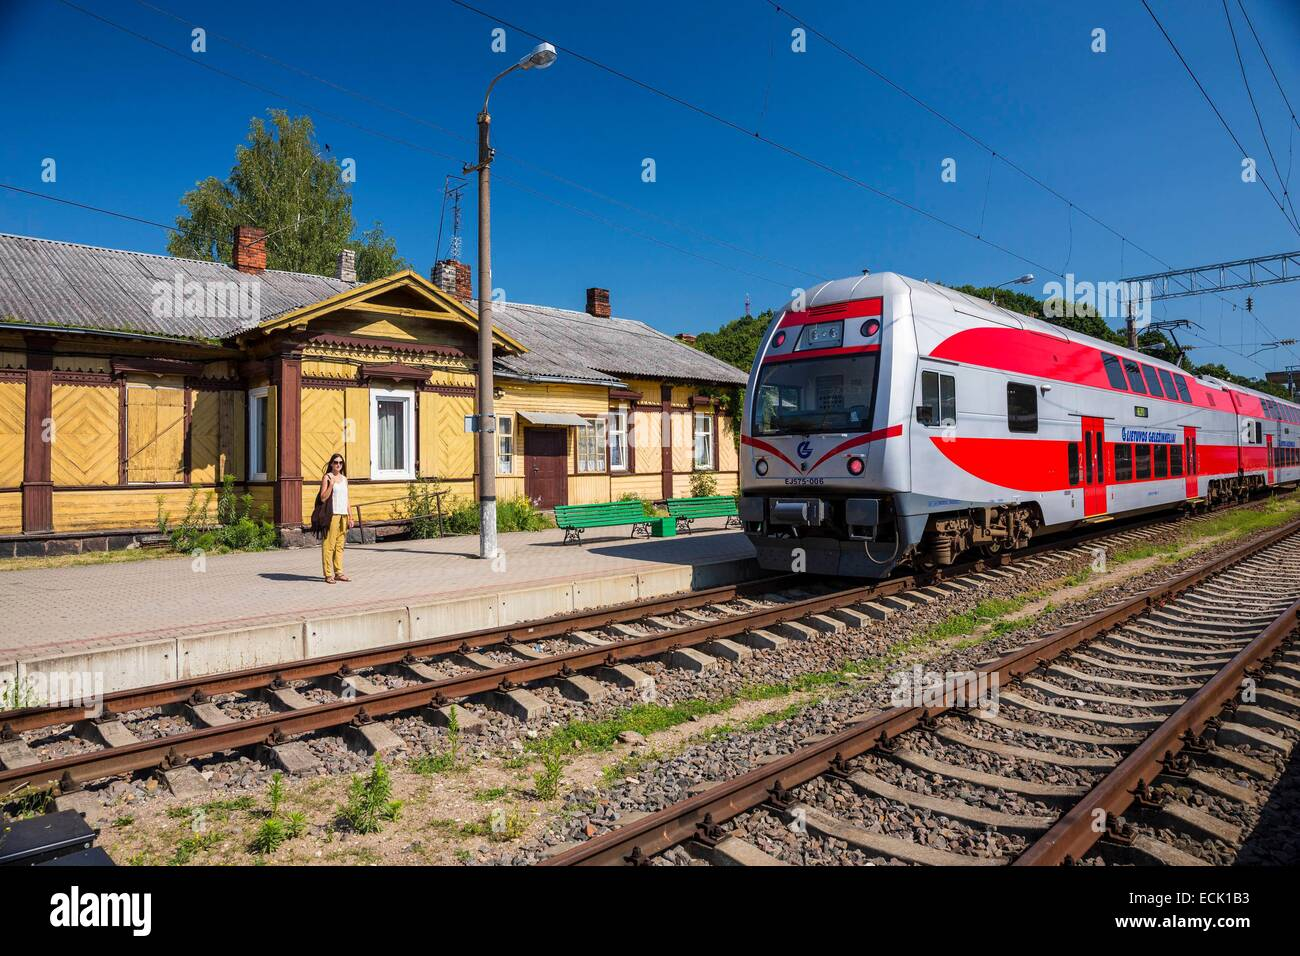 Lithuania (Baltic States), Kaunas County, Kaunas, the railway station - Stock Image